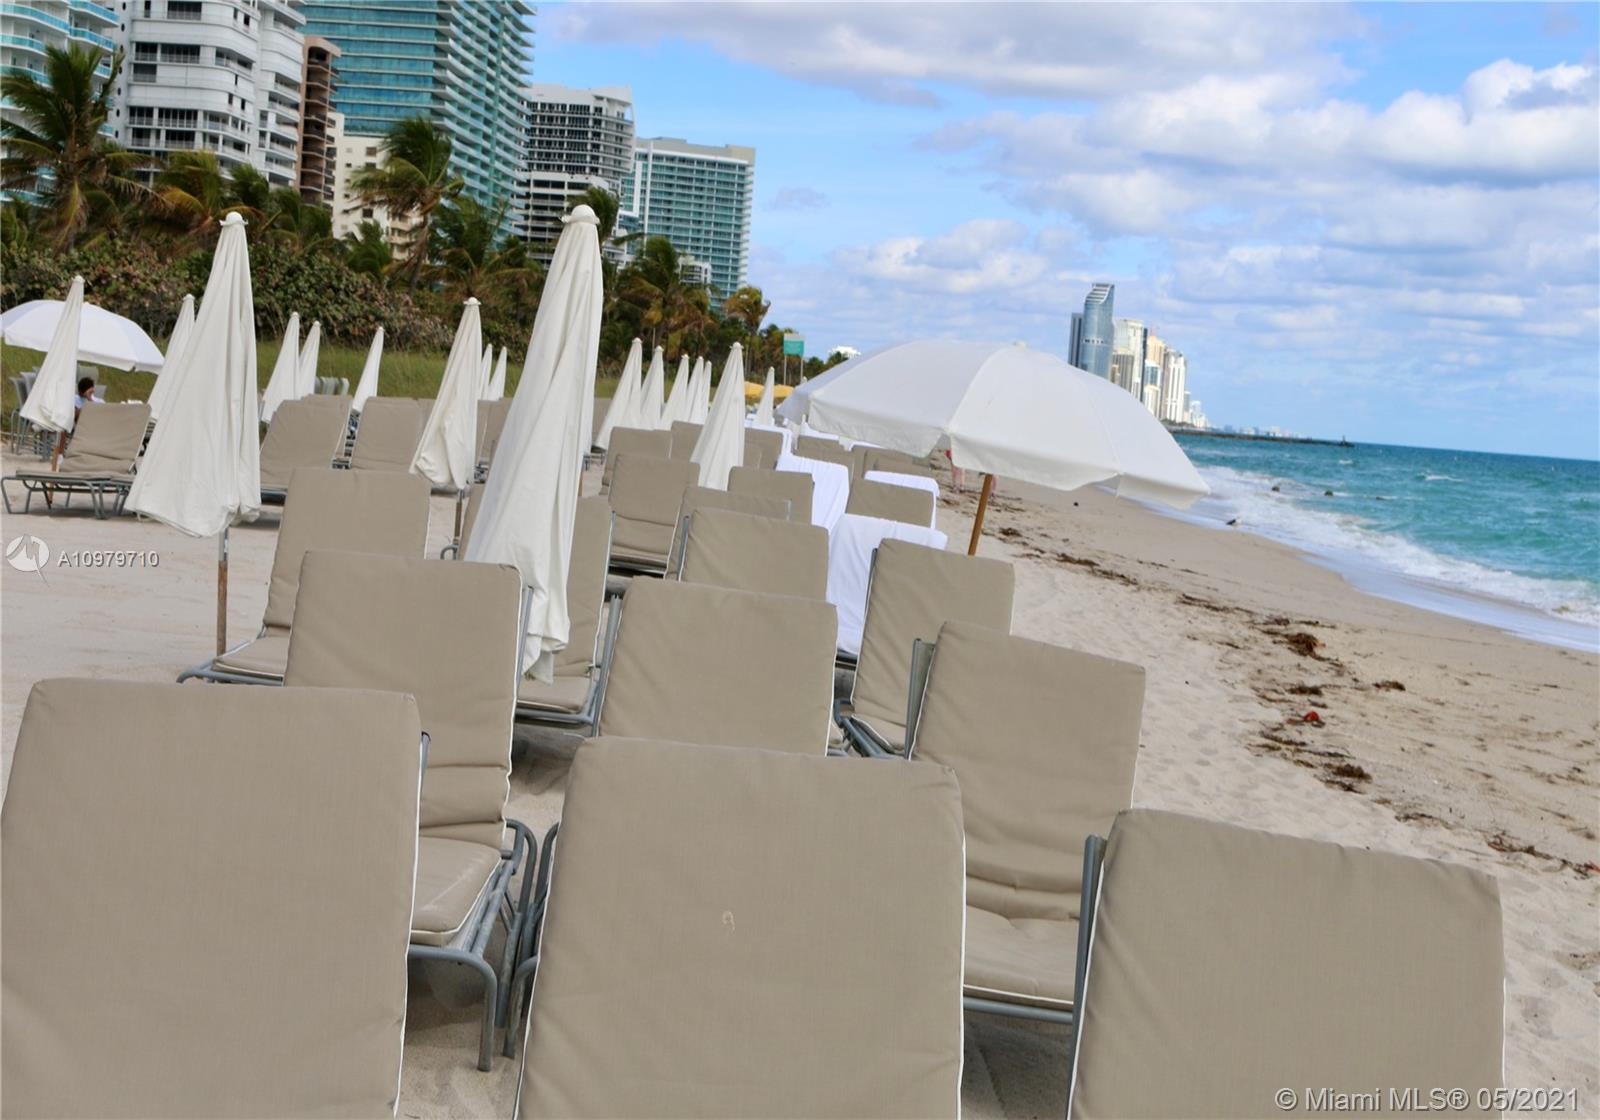 Photo of 9801 Collins Ave #10R, Bal Harbour, Florida, 33154 - walking or running on the Bal; Harbour beach...